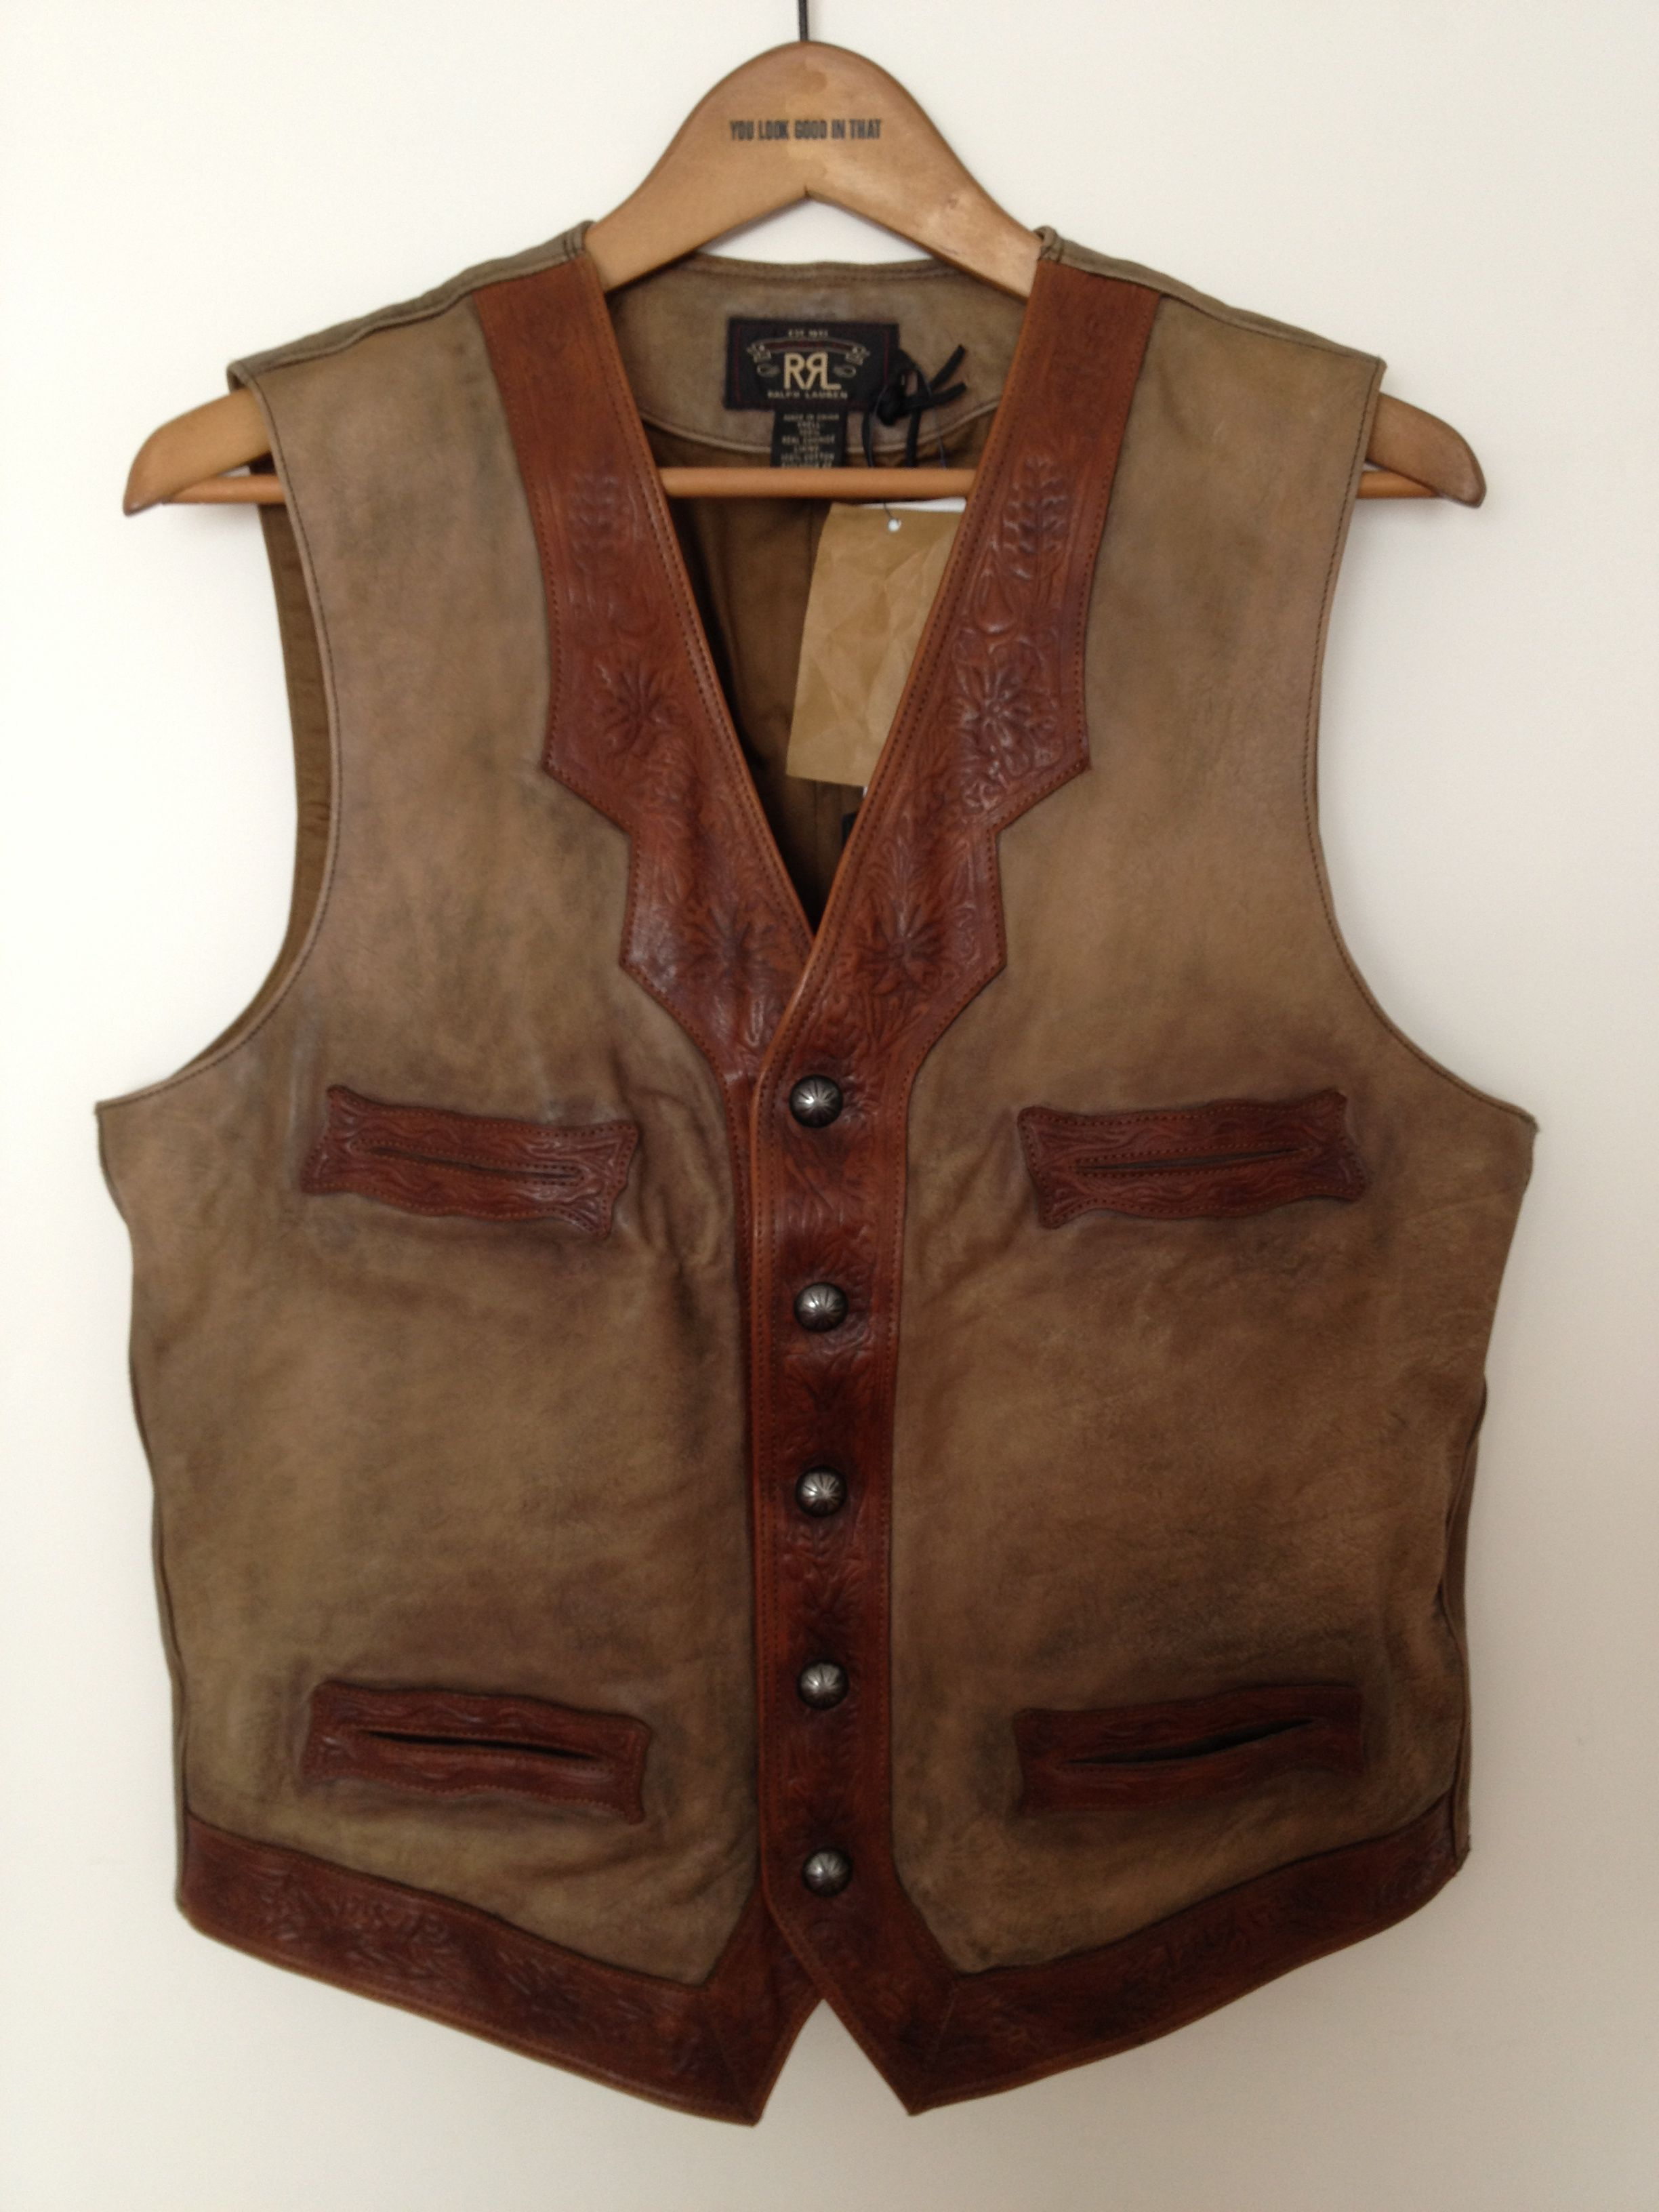 Leather Men's Vest, Suede Leather Vest, Men's Classic Leather Vest, Gentlemen's Suede Waistcoat, Western Steampunk Suede Vest, Father's Day